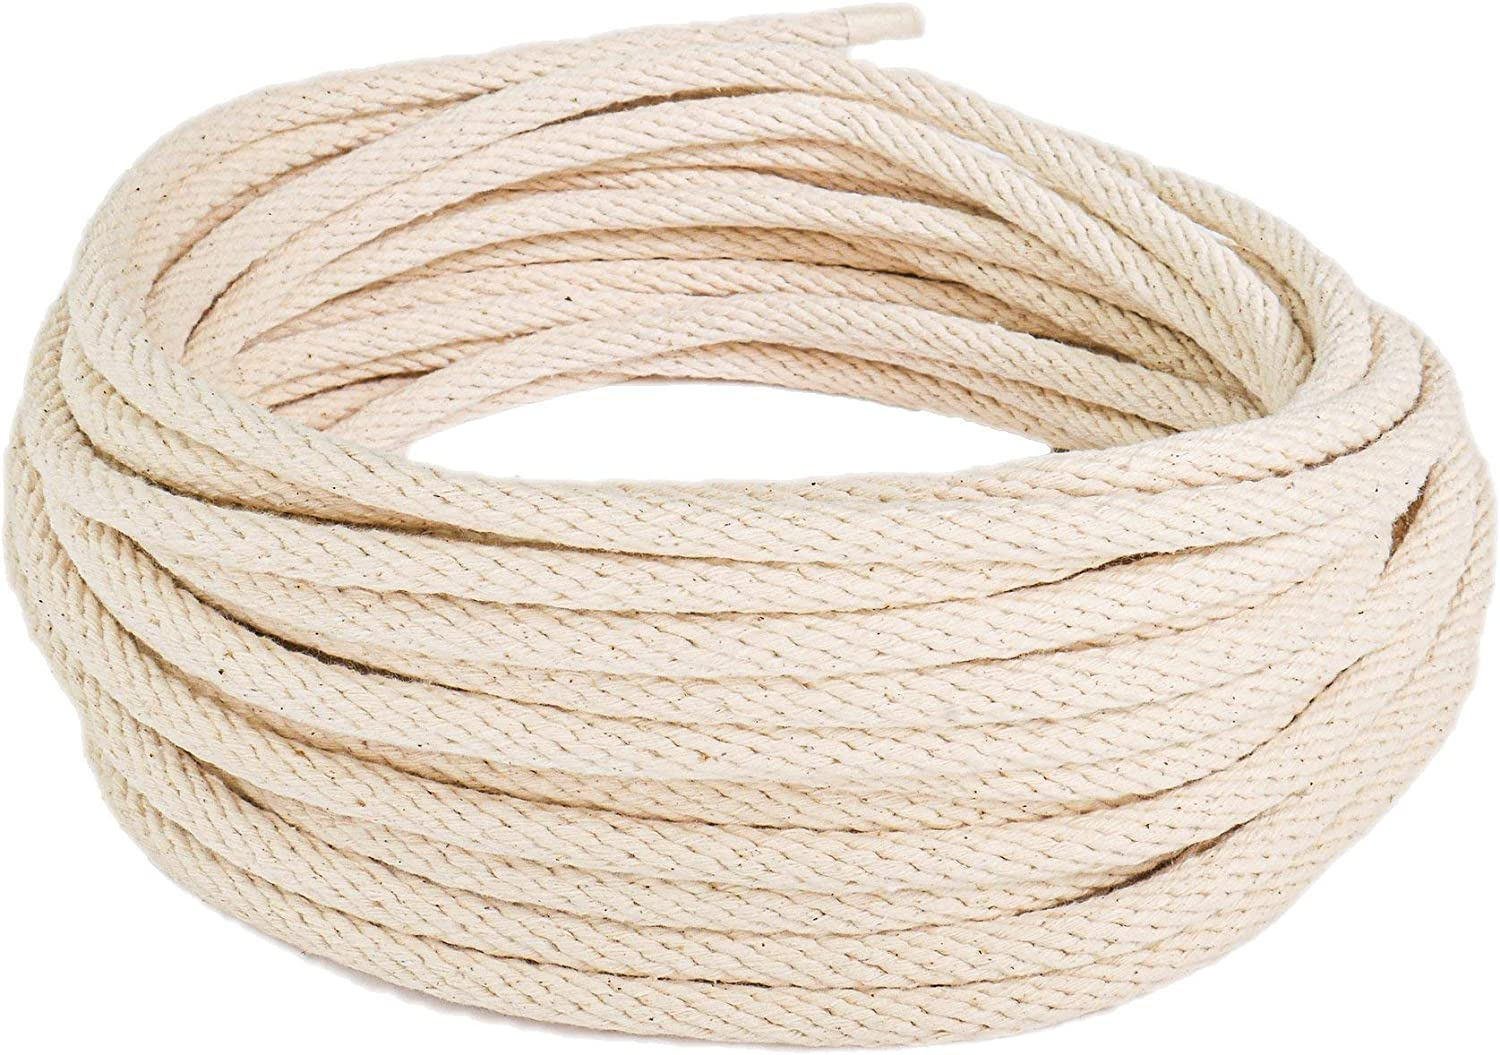 and Decorative Purposes All Purpose Rope for Window Sashing 3//8 x 25ft Coil, Natural SGT KNOTS Cotton Sash Cord Tying Clotheslines